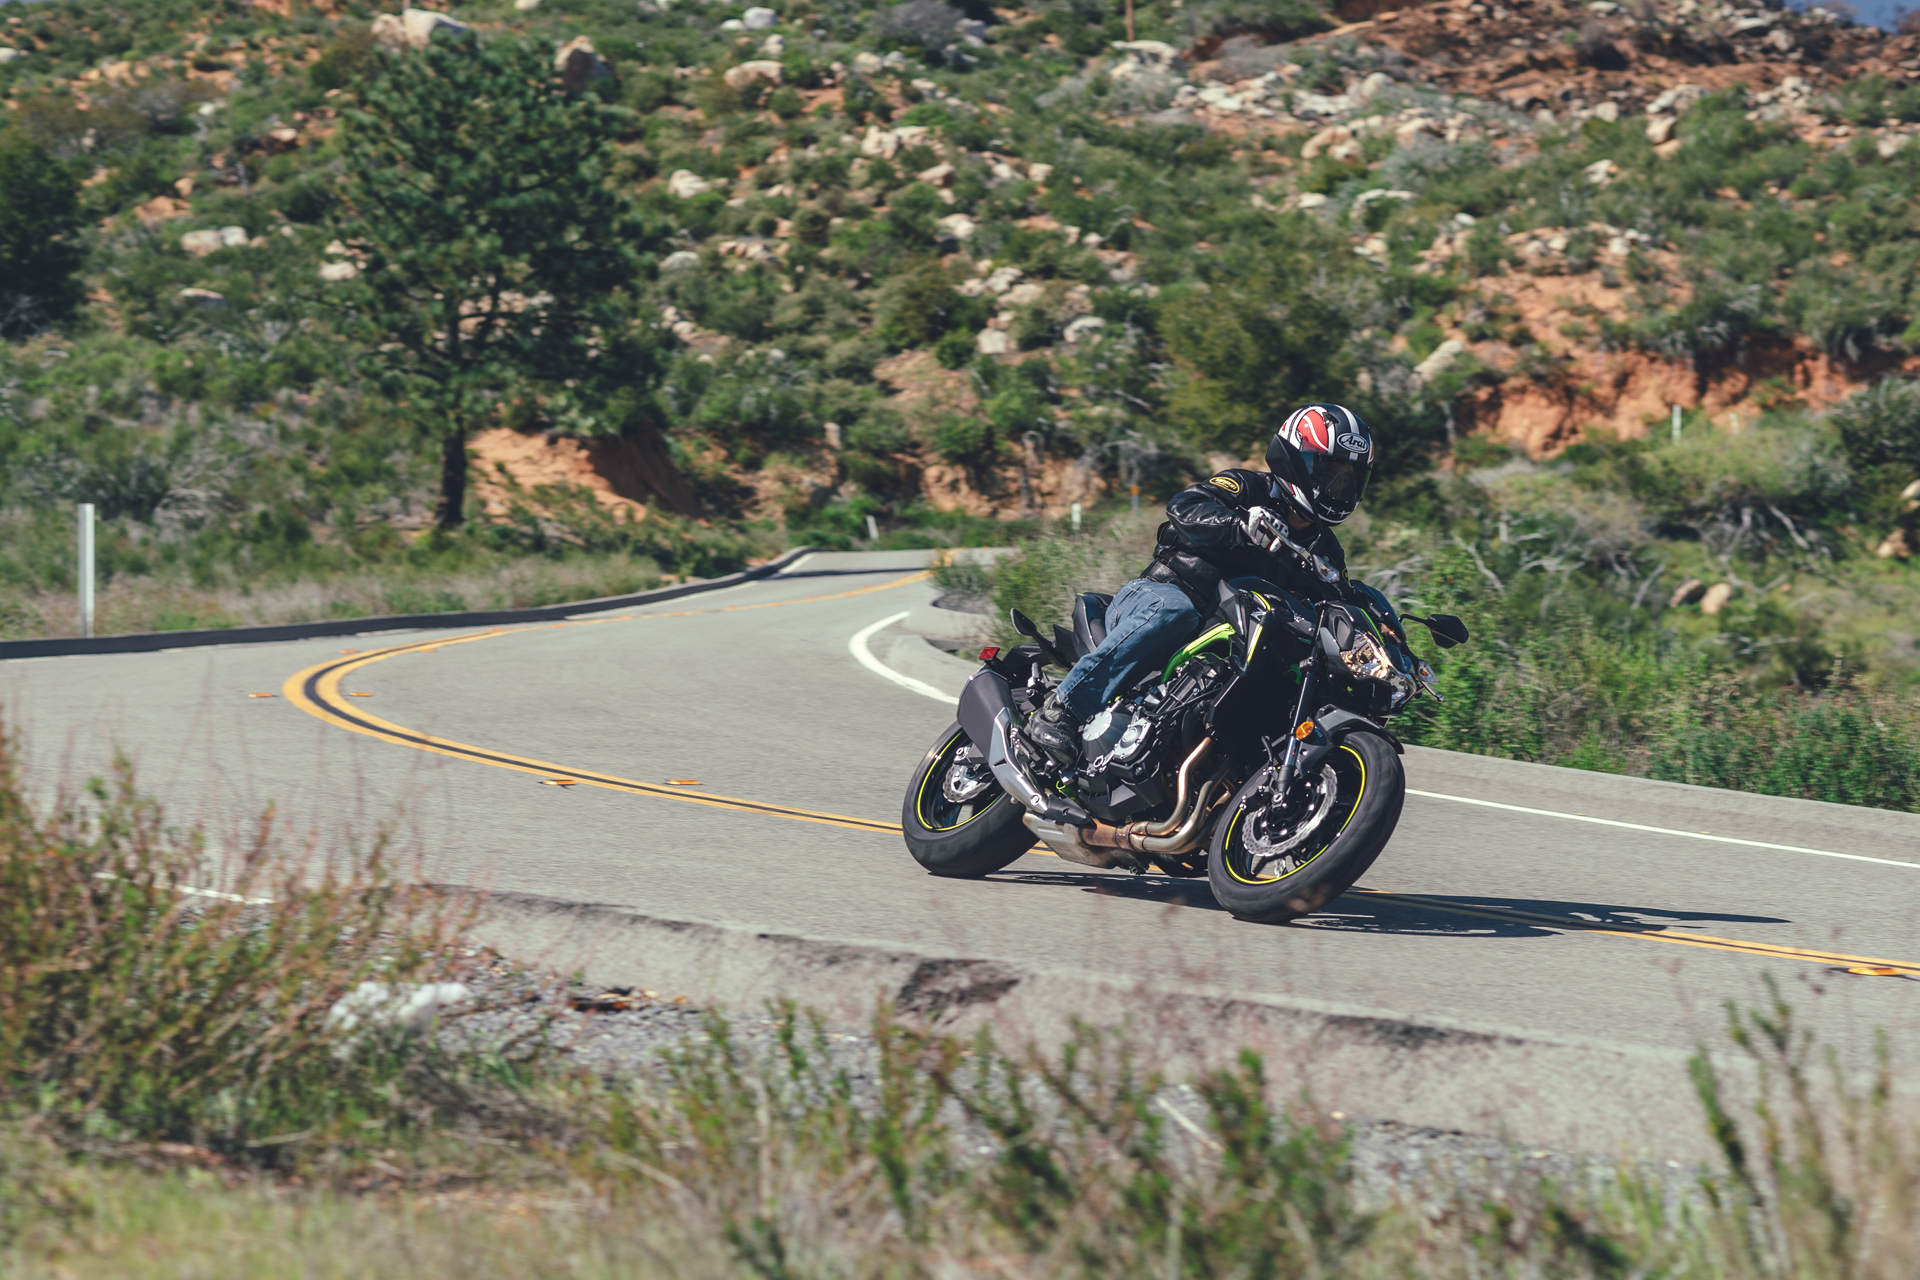 Harley manages to fit all the complex electronics and emissions gear - Sixth Gear Is An Overdrive To Improve Mileage And Calm Things Down When Cruising On The Highway